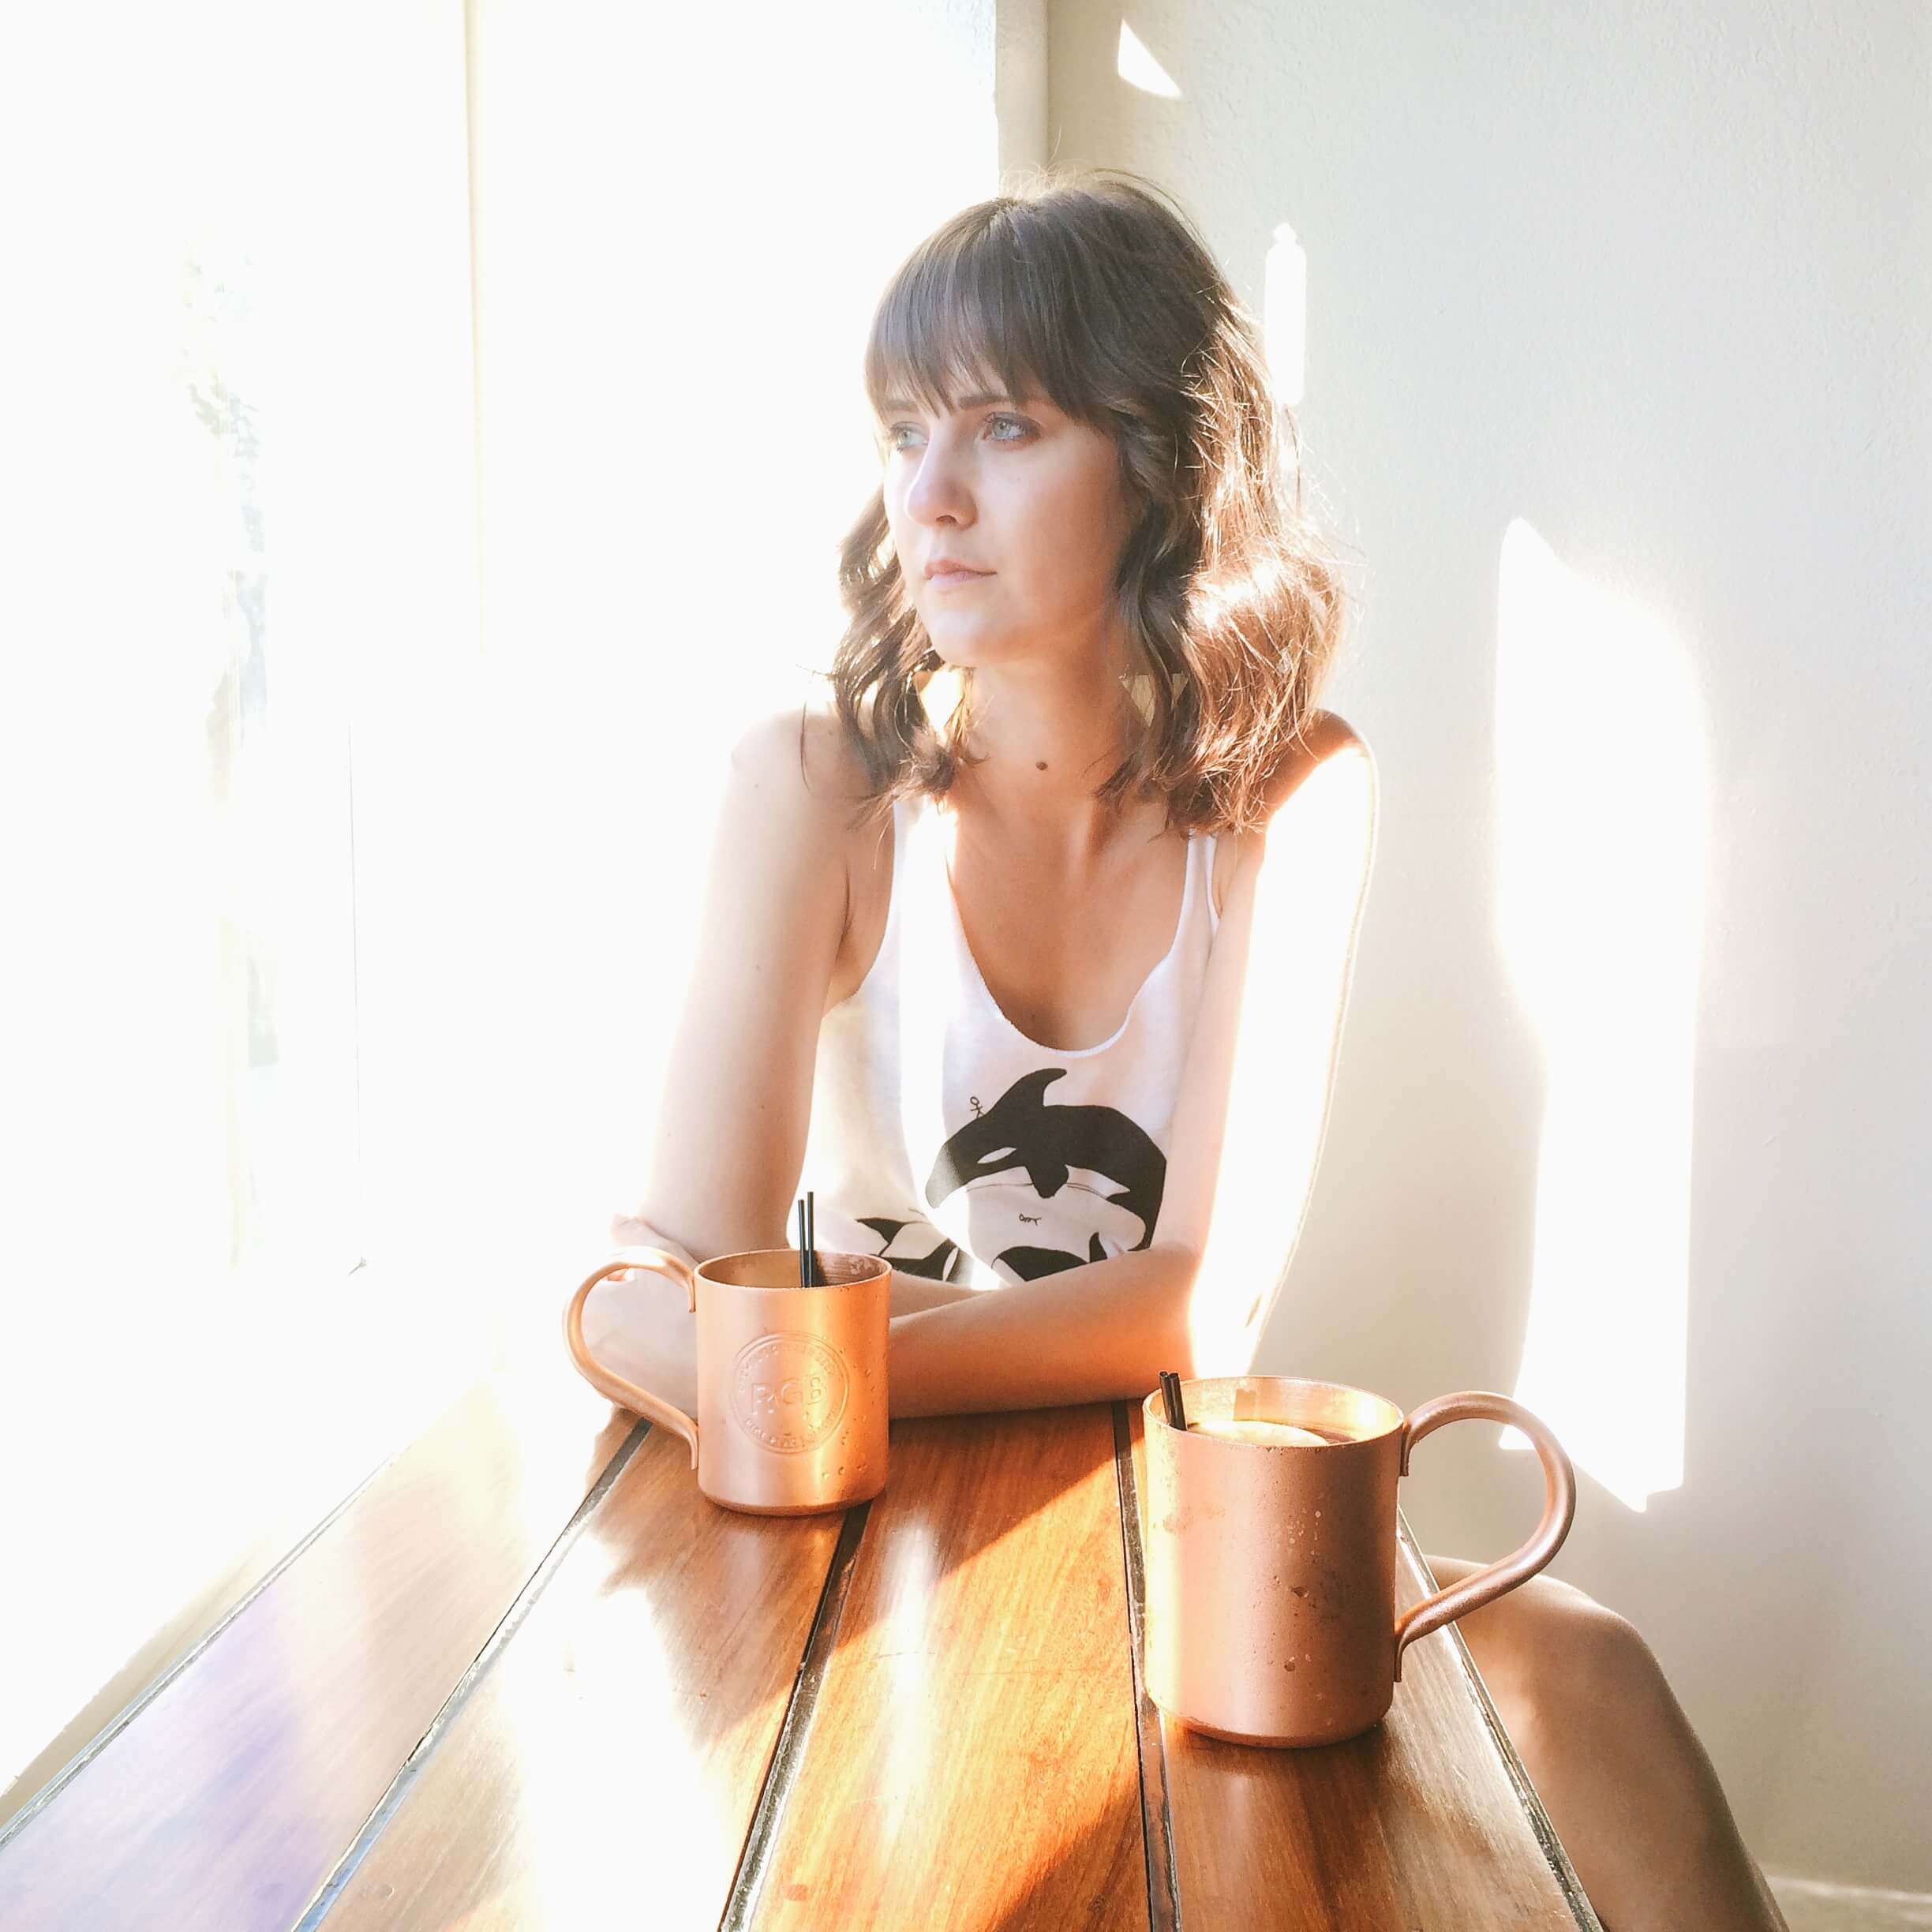 Photo of woman shrouded in light drinking Moscow Mule next to a window